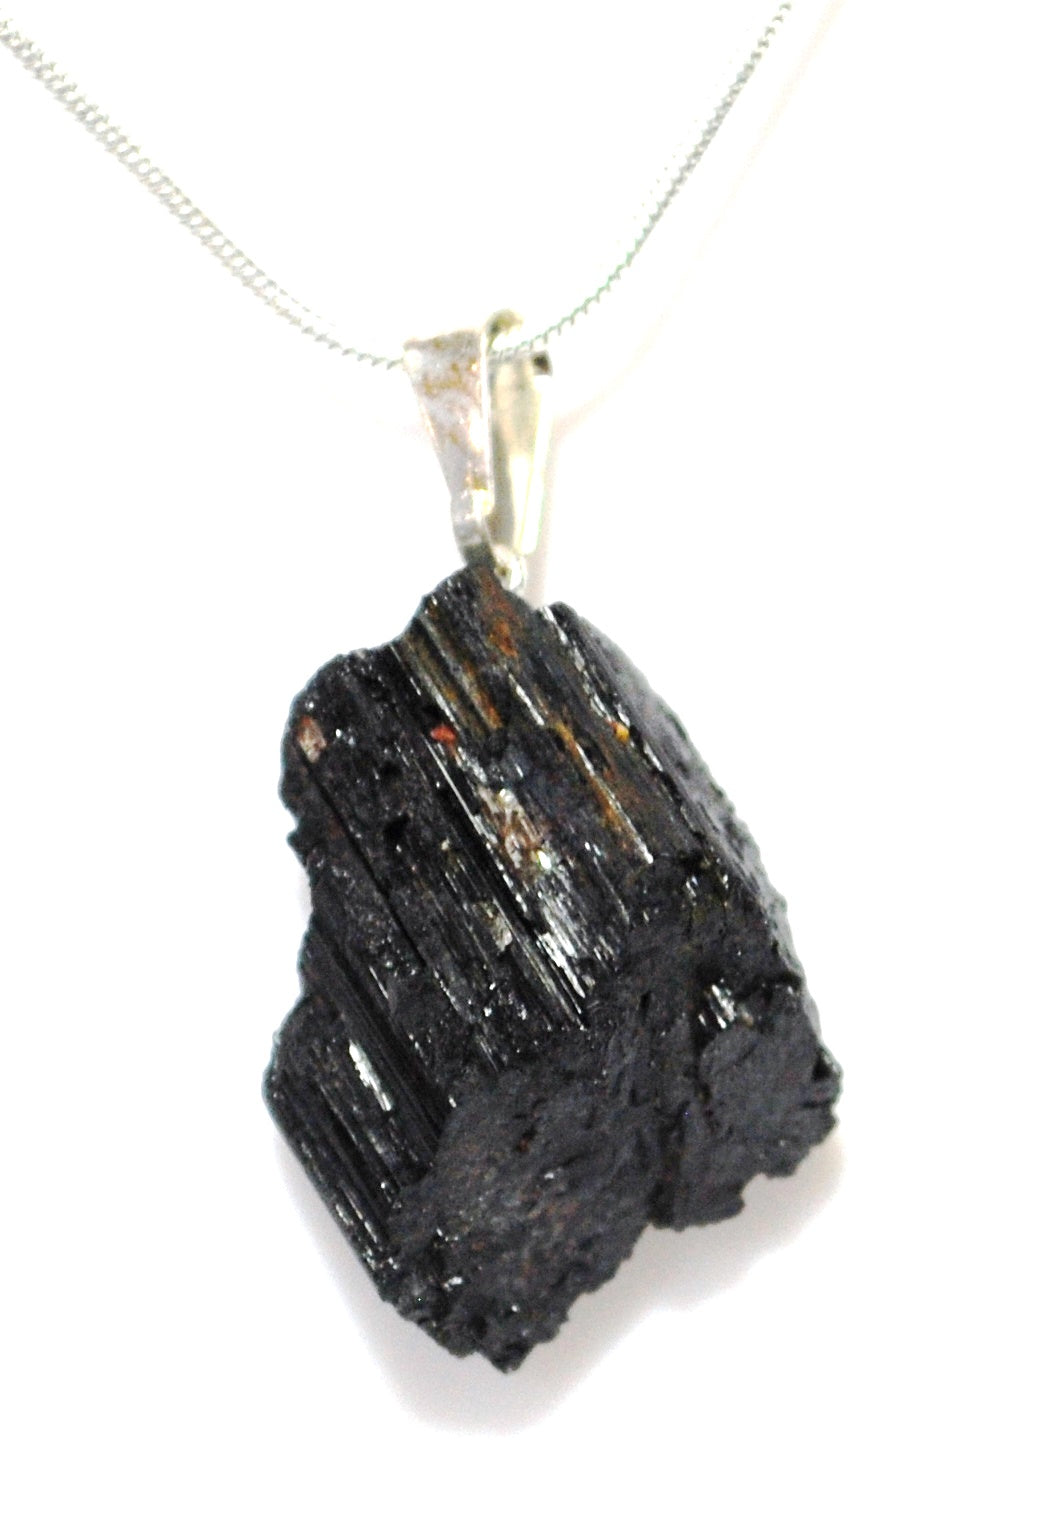 New! Natural Raw Black Tourmaline Crystal Stone Pendant & 18